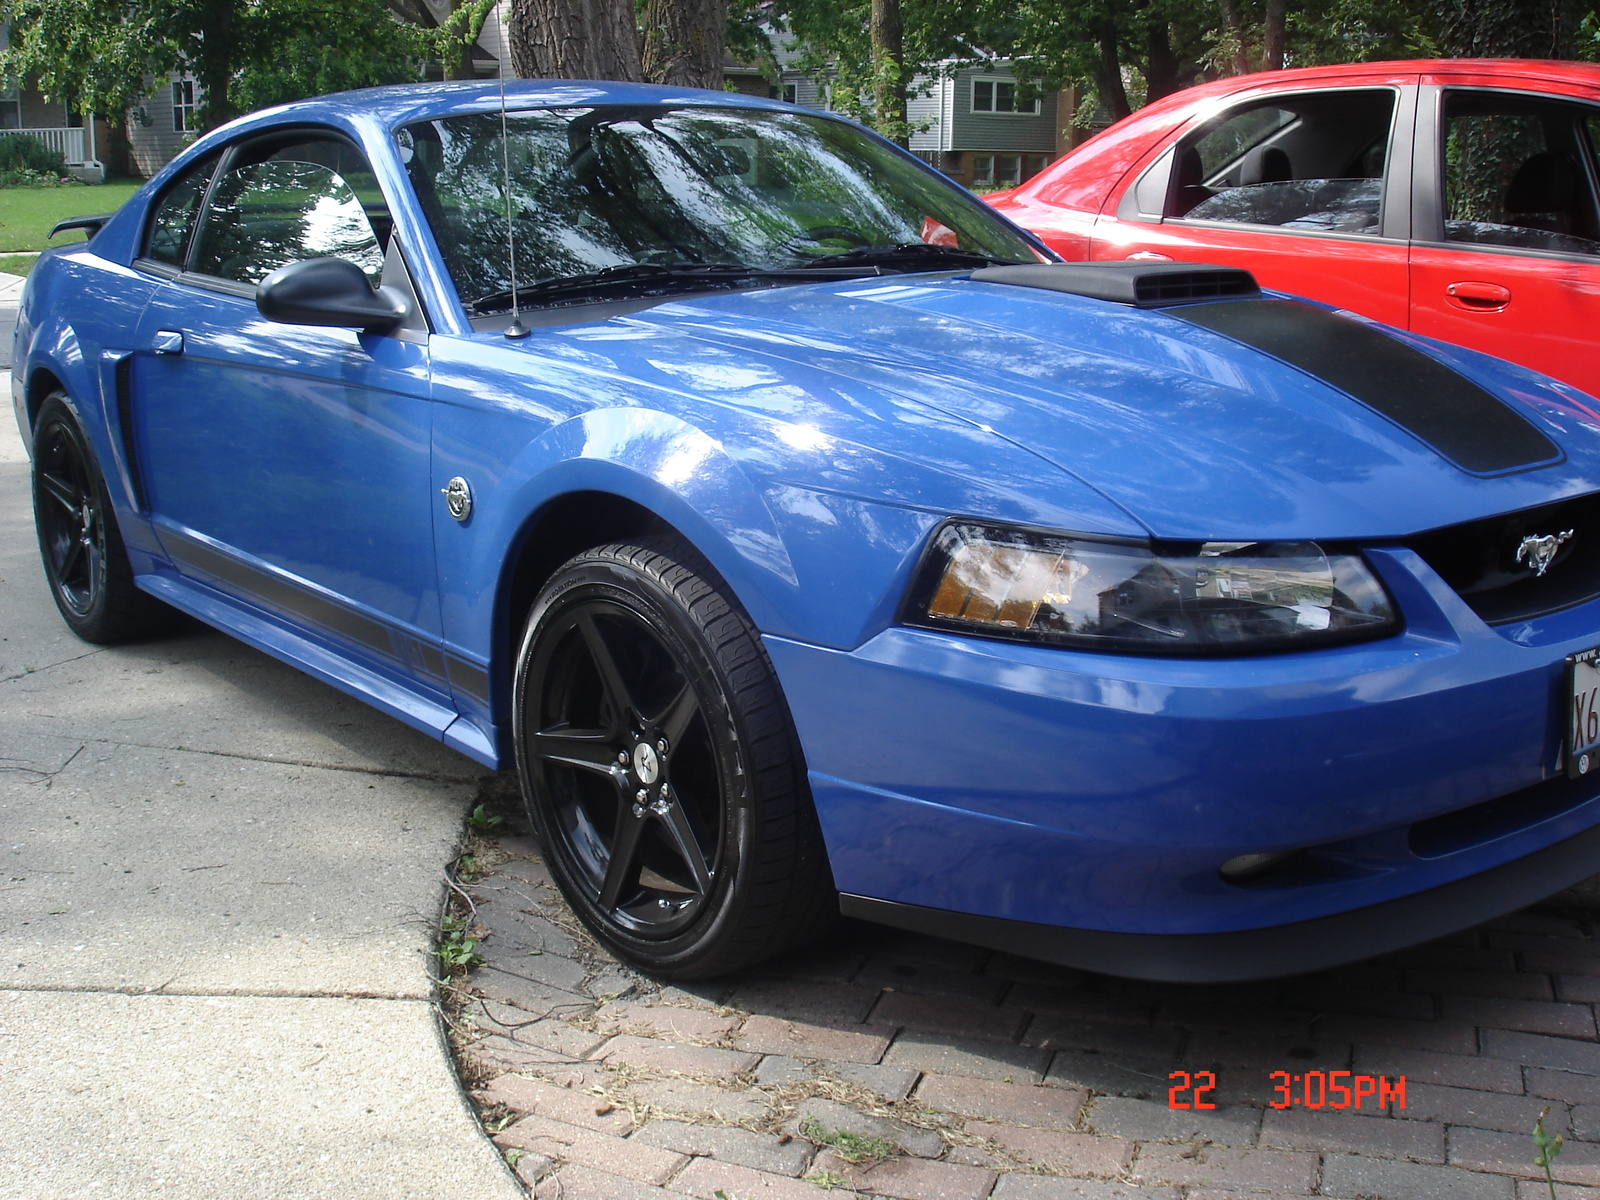 2004 ford mustang mach 1 picture exterior. Black Bedroom Furniture Sets. Home Design Ideas